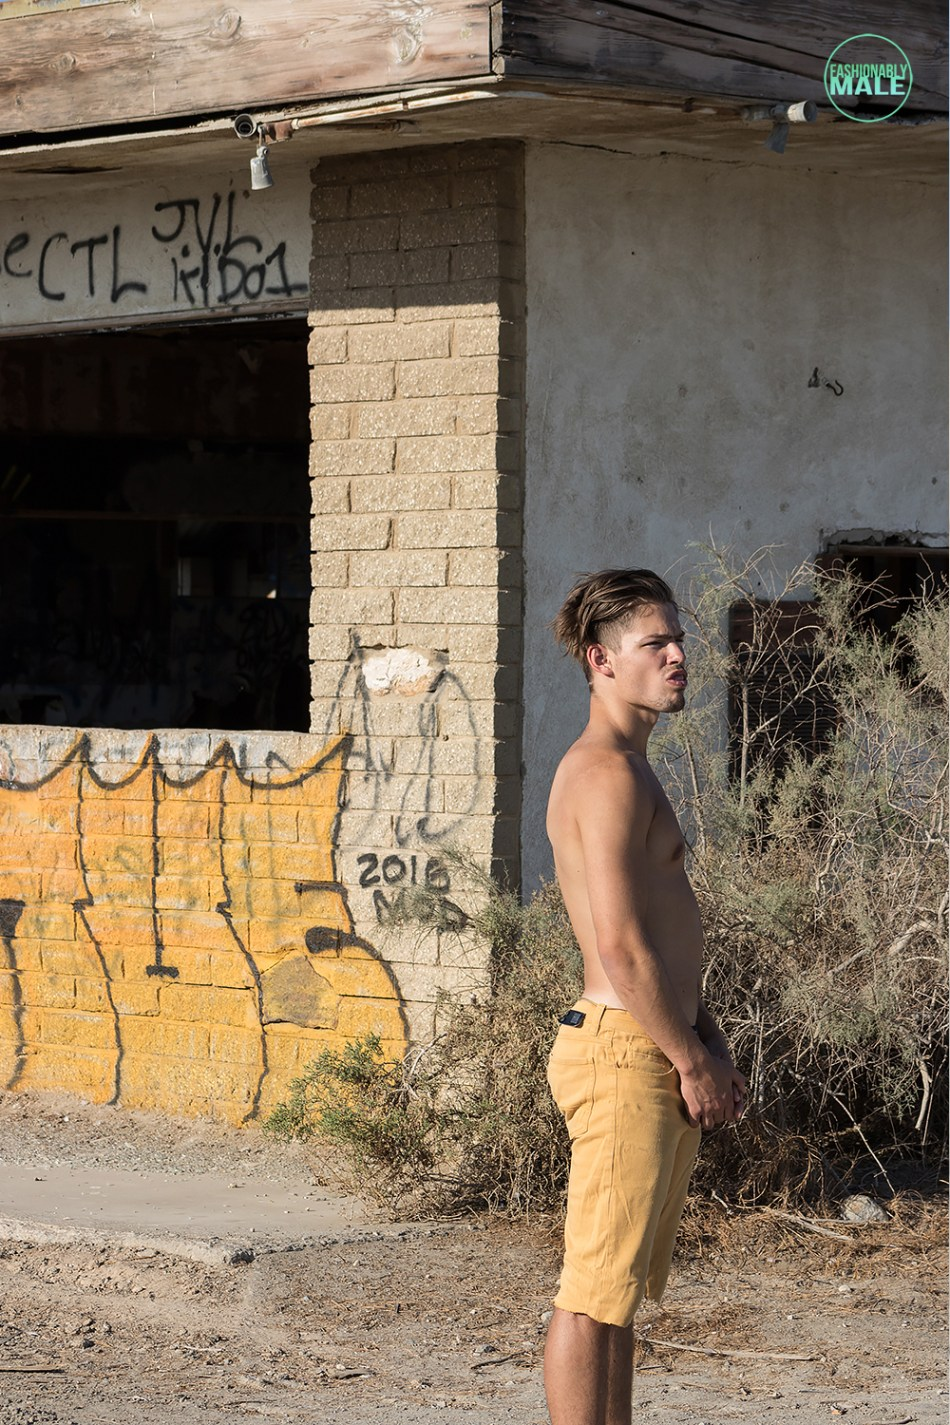 Matt Dealy by Benjamin Veronis for Fashionably Male8